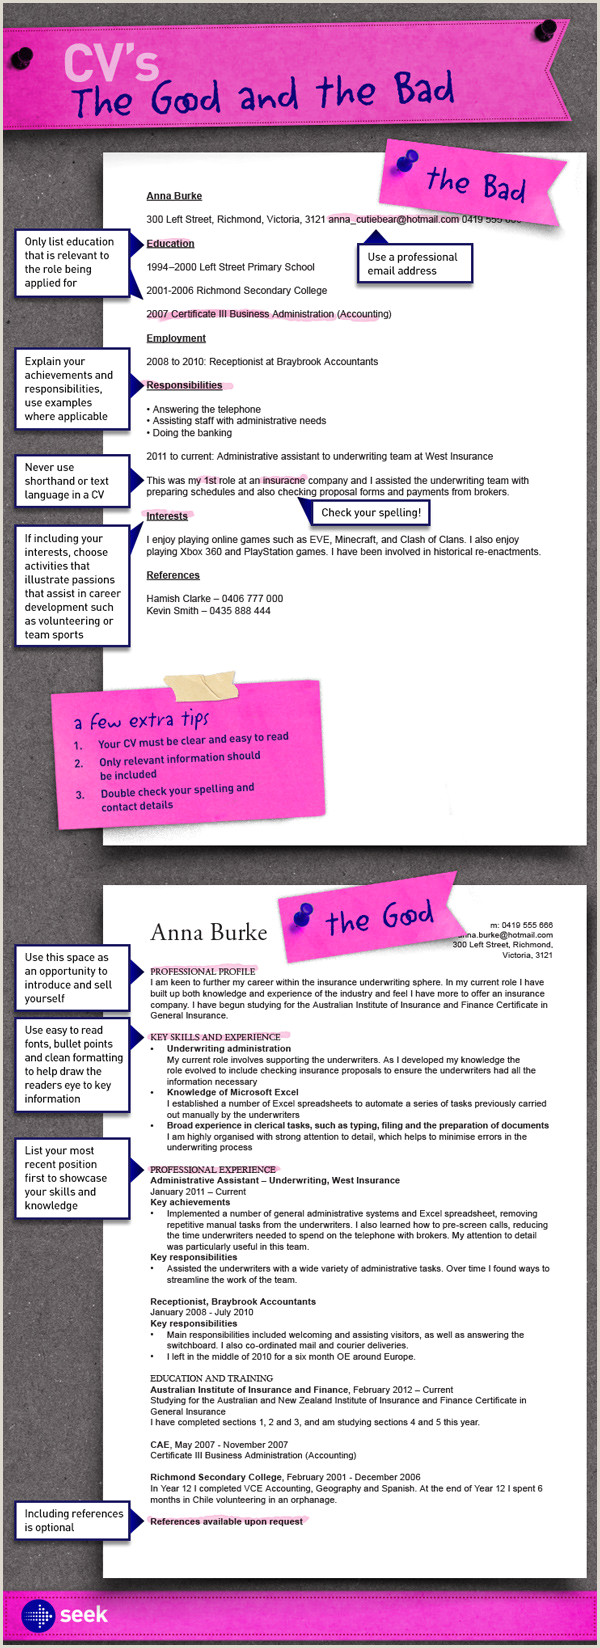 CV s The good and the bad how to write a killer CV to